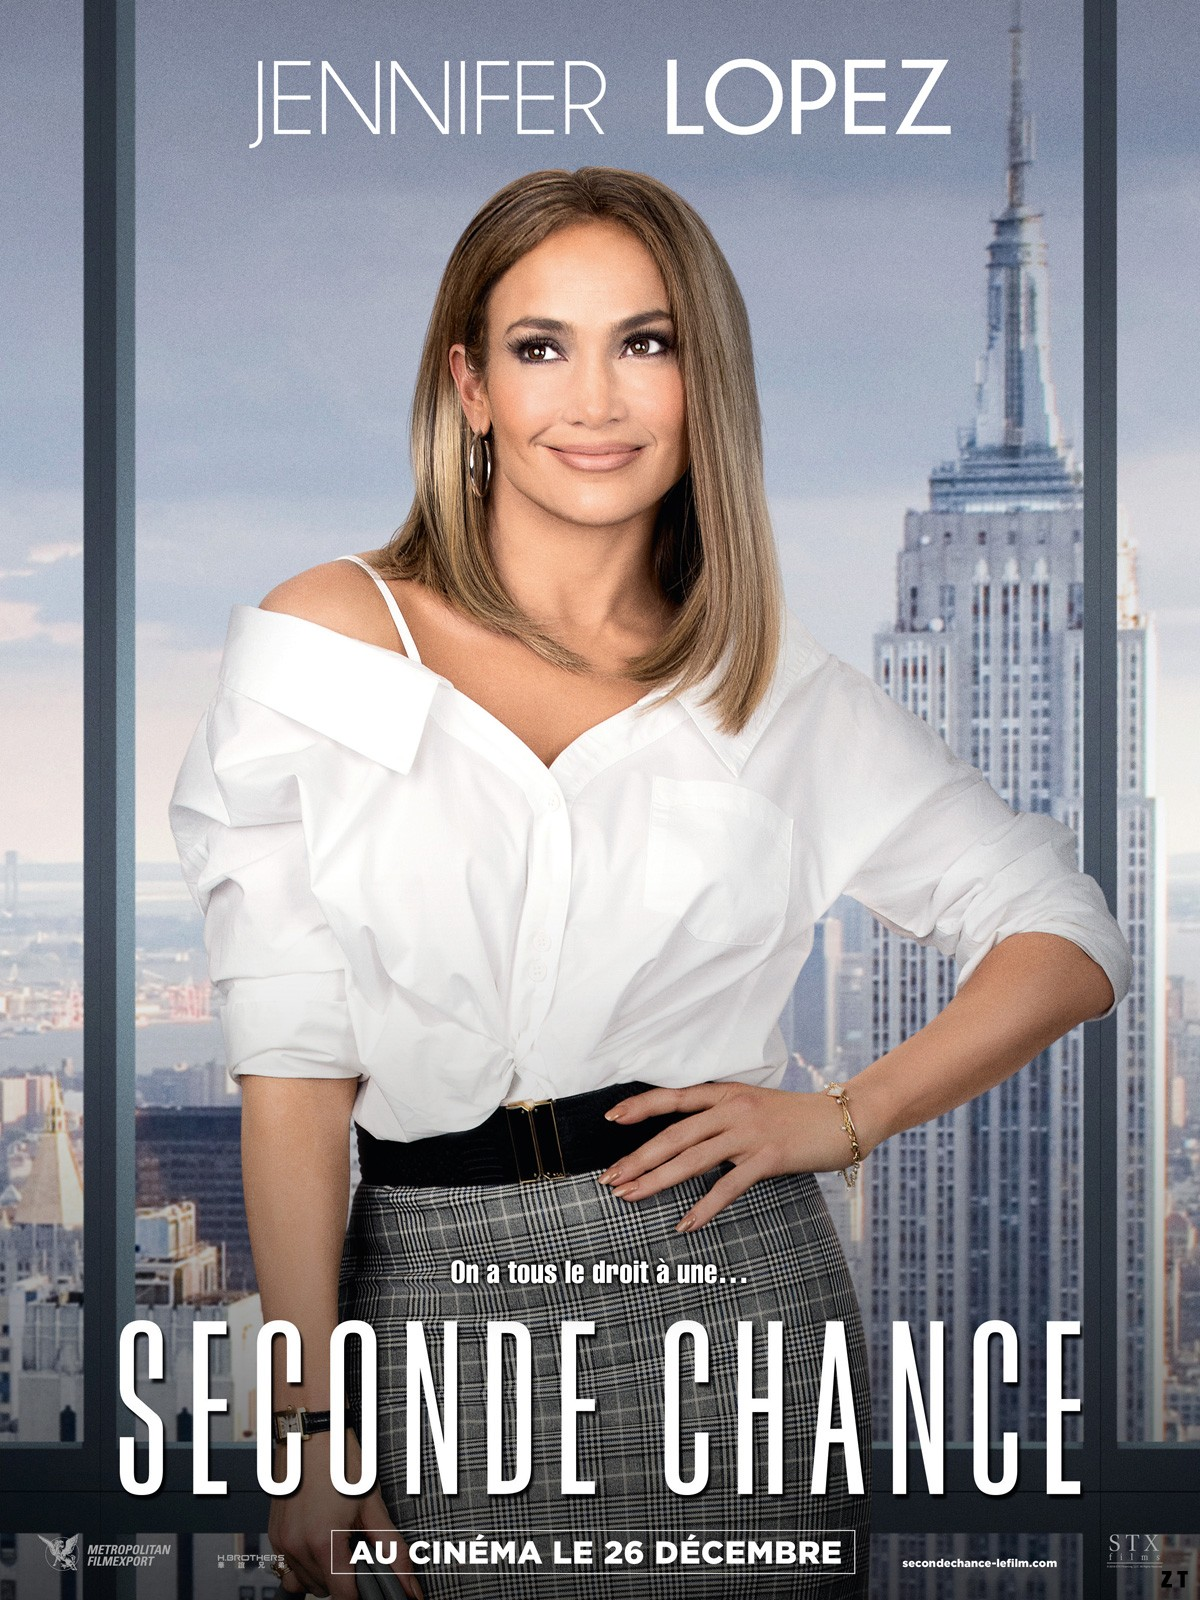 Seconde chance [BDRip] [Streaming] [Telecharger]